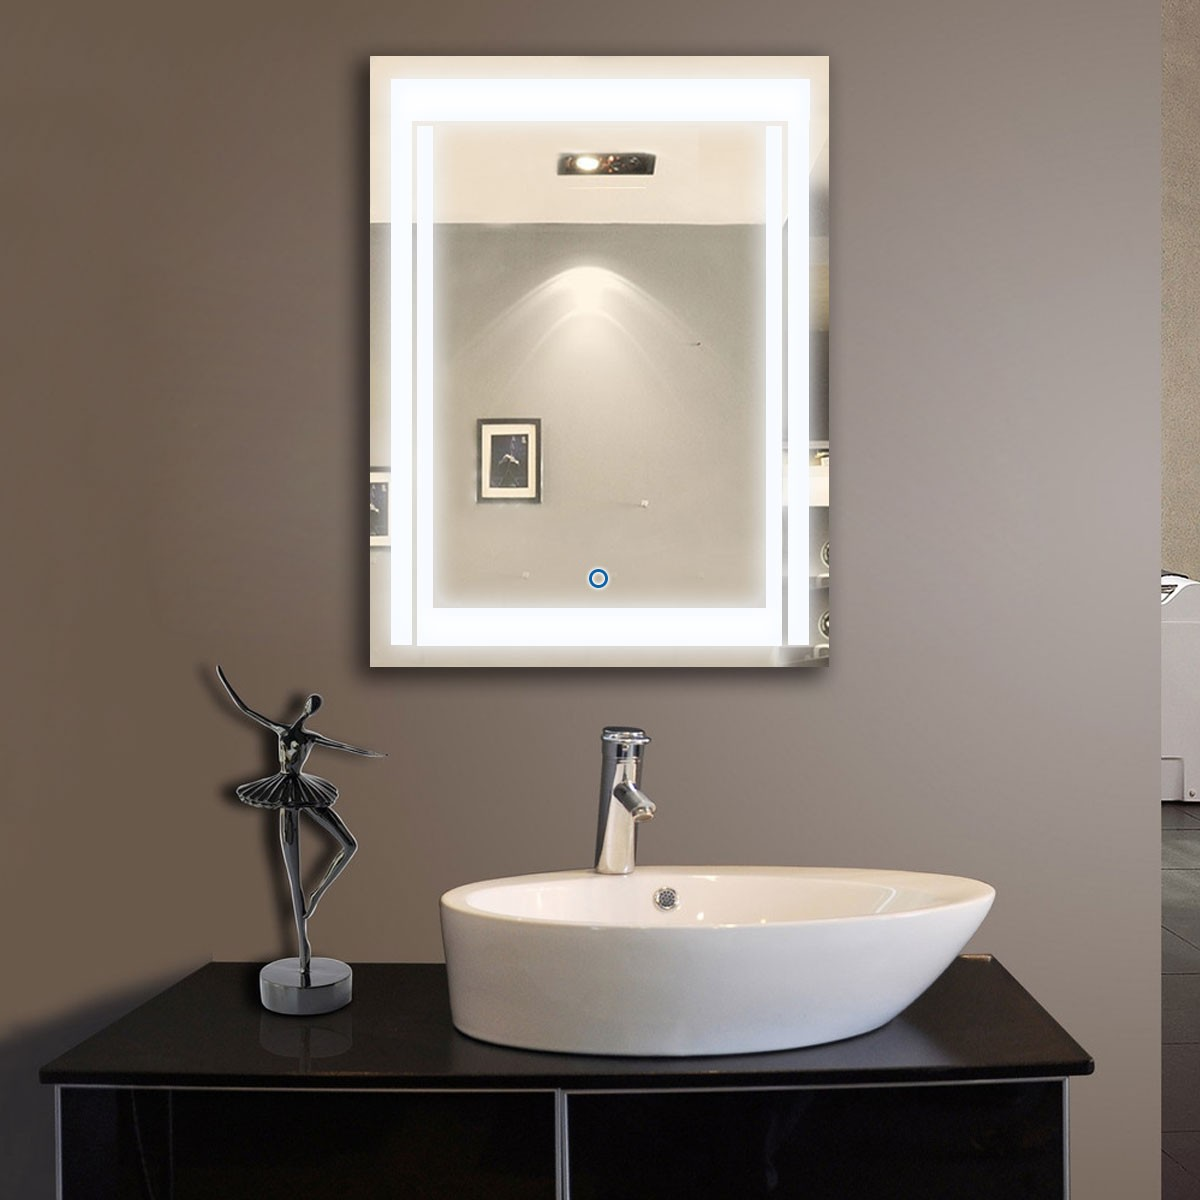 24 x 32 In Vertical LED Bathroom Mirror with Touch Button (DK-OD-CK150)